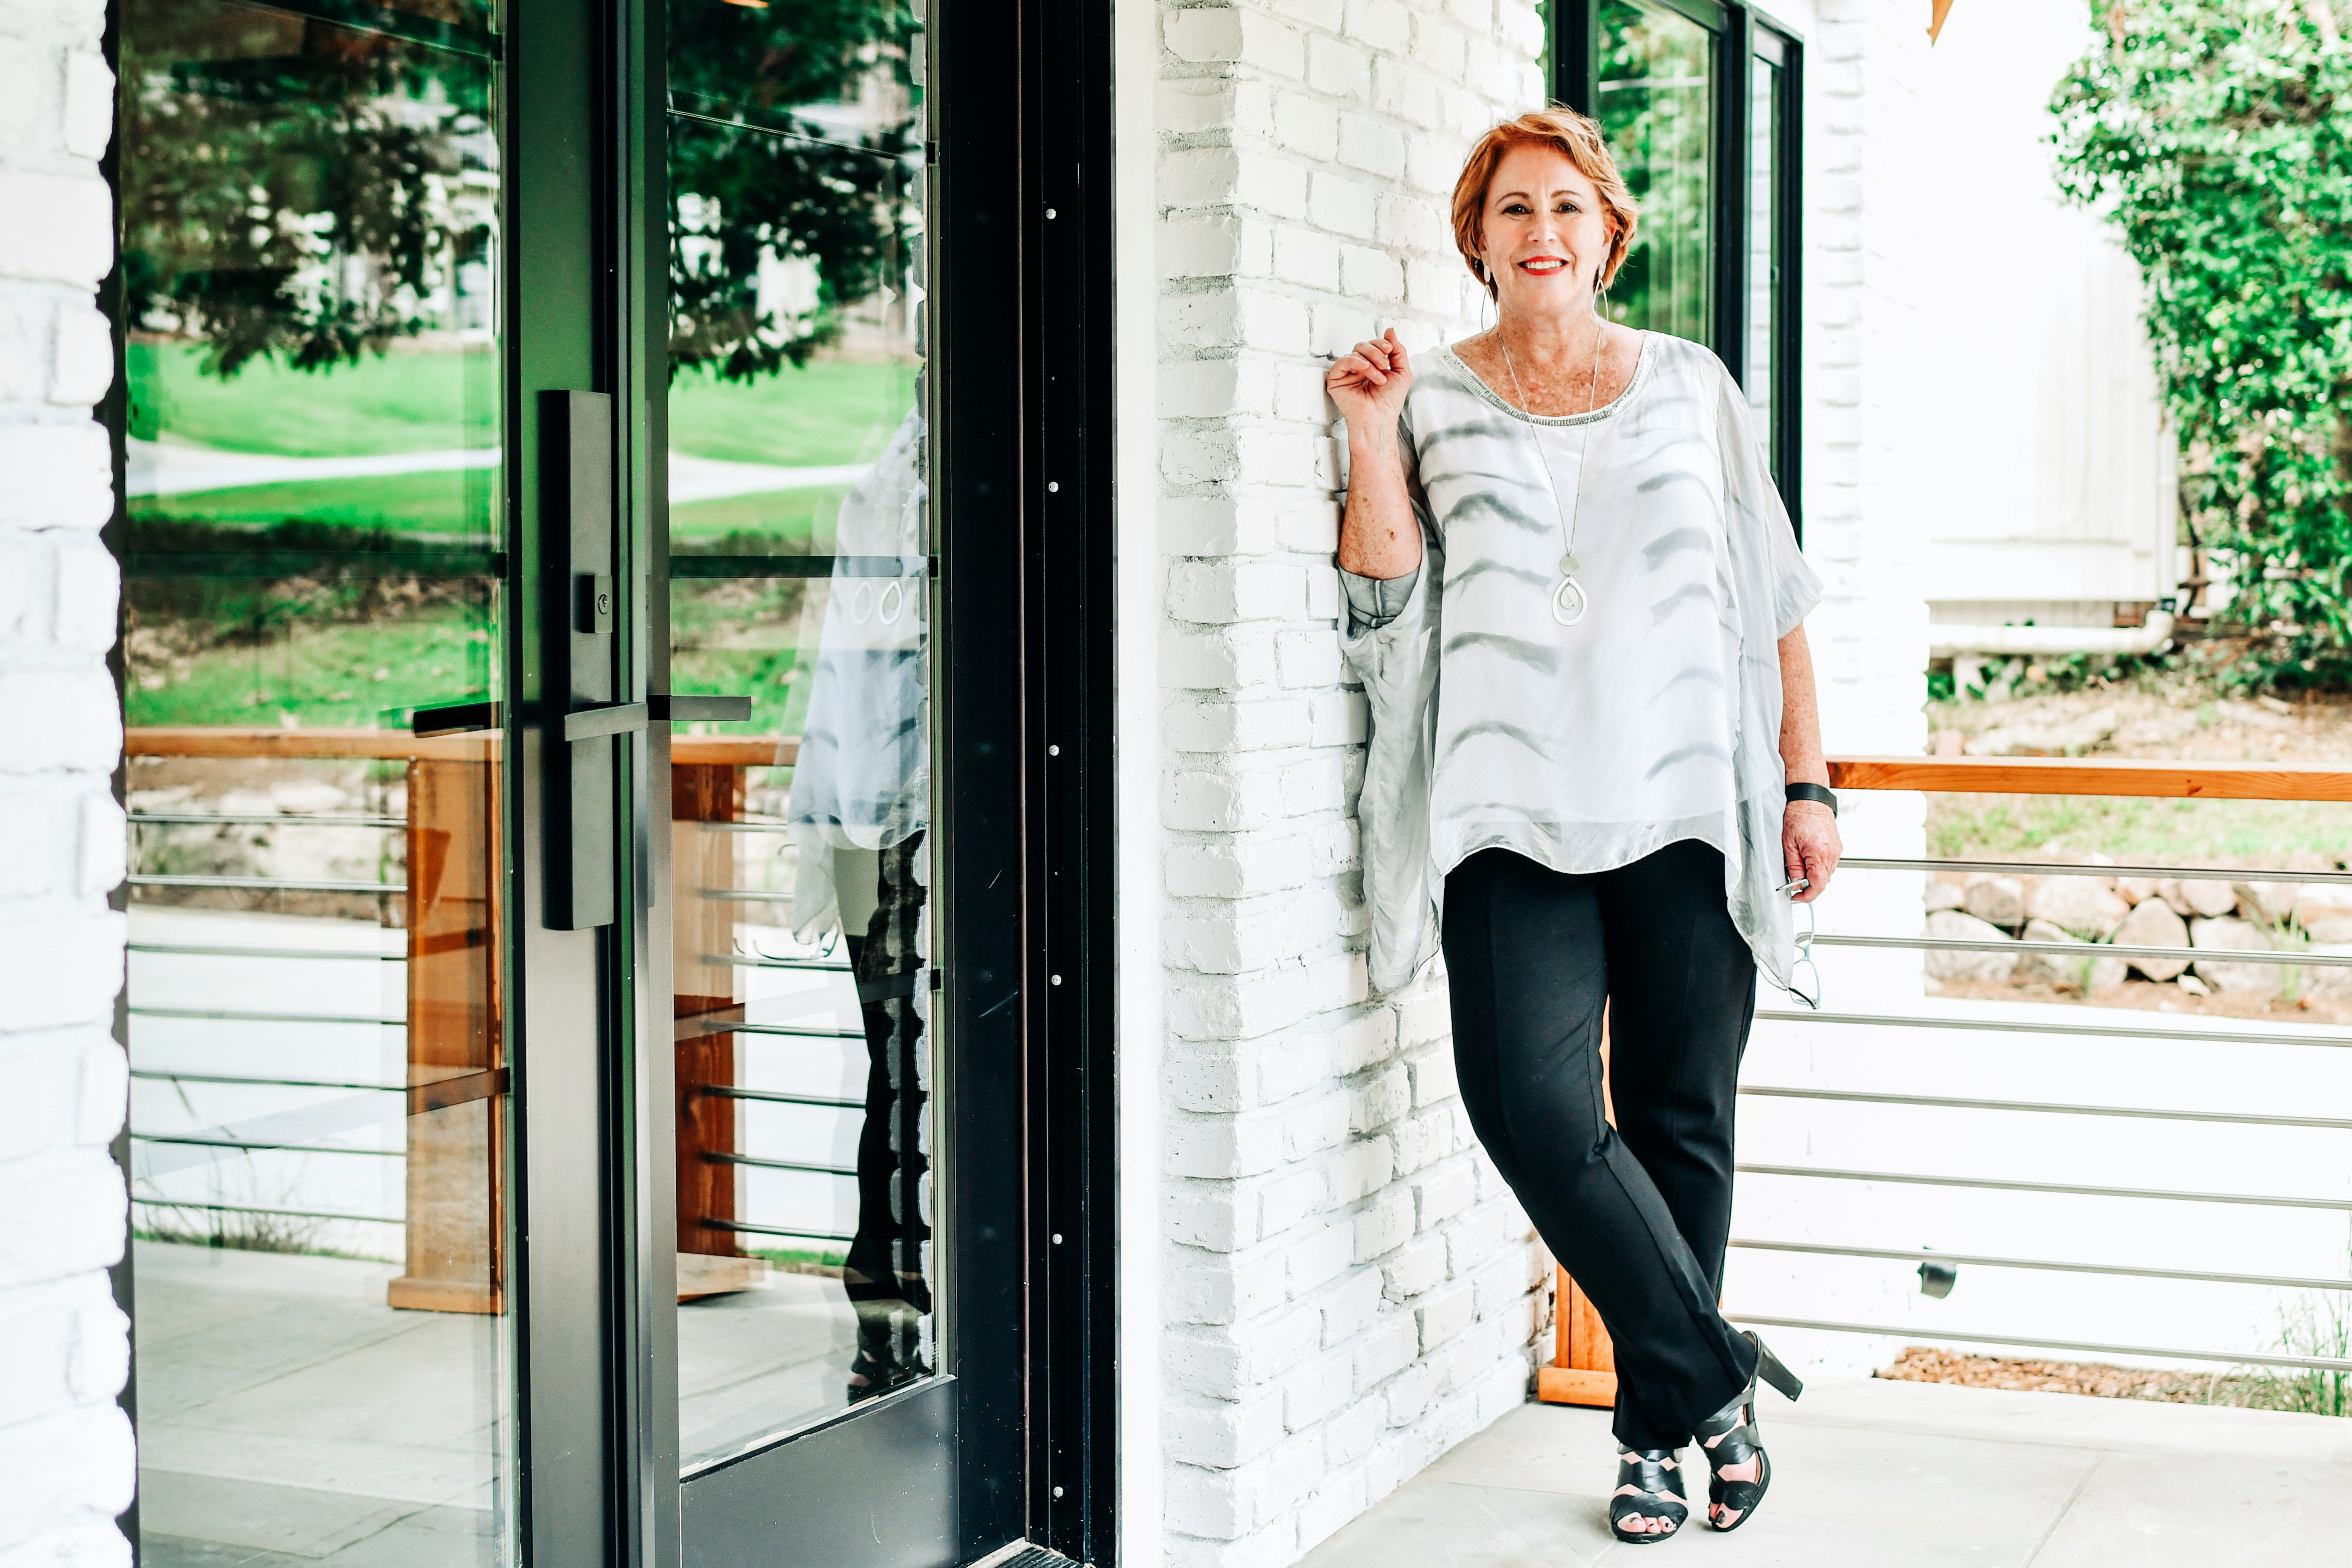 Portrait of Professional Home Stager Jeanne Westmoreland, owner of Classic Staging, LLC. in Atlanta, Georgia.